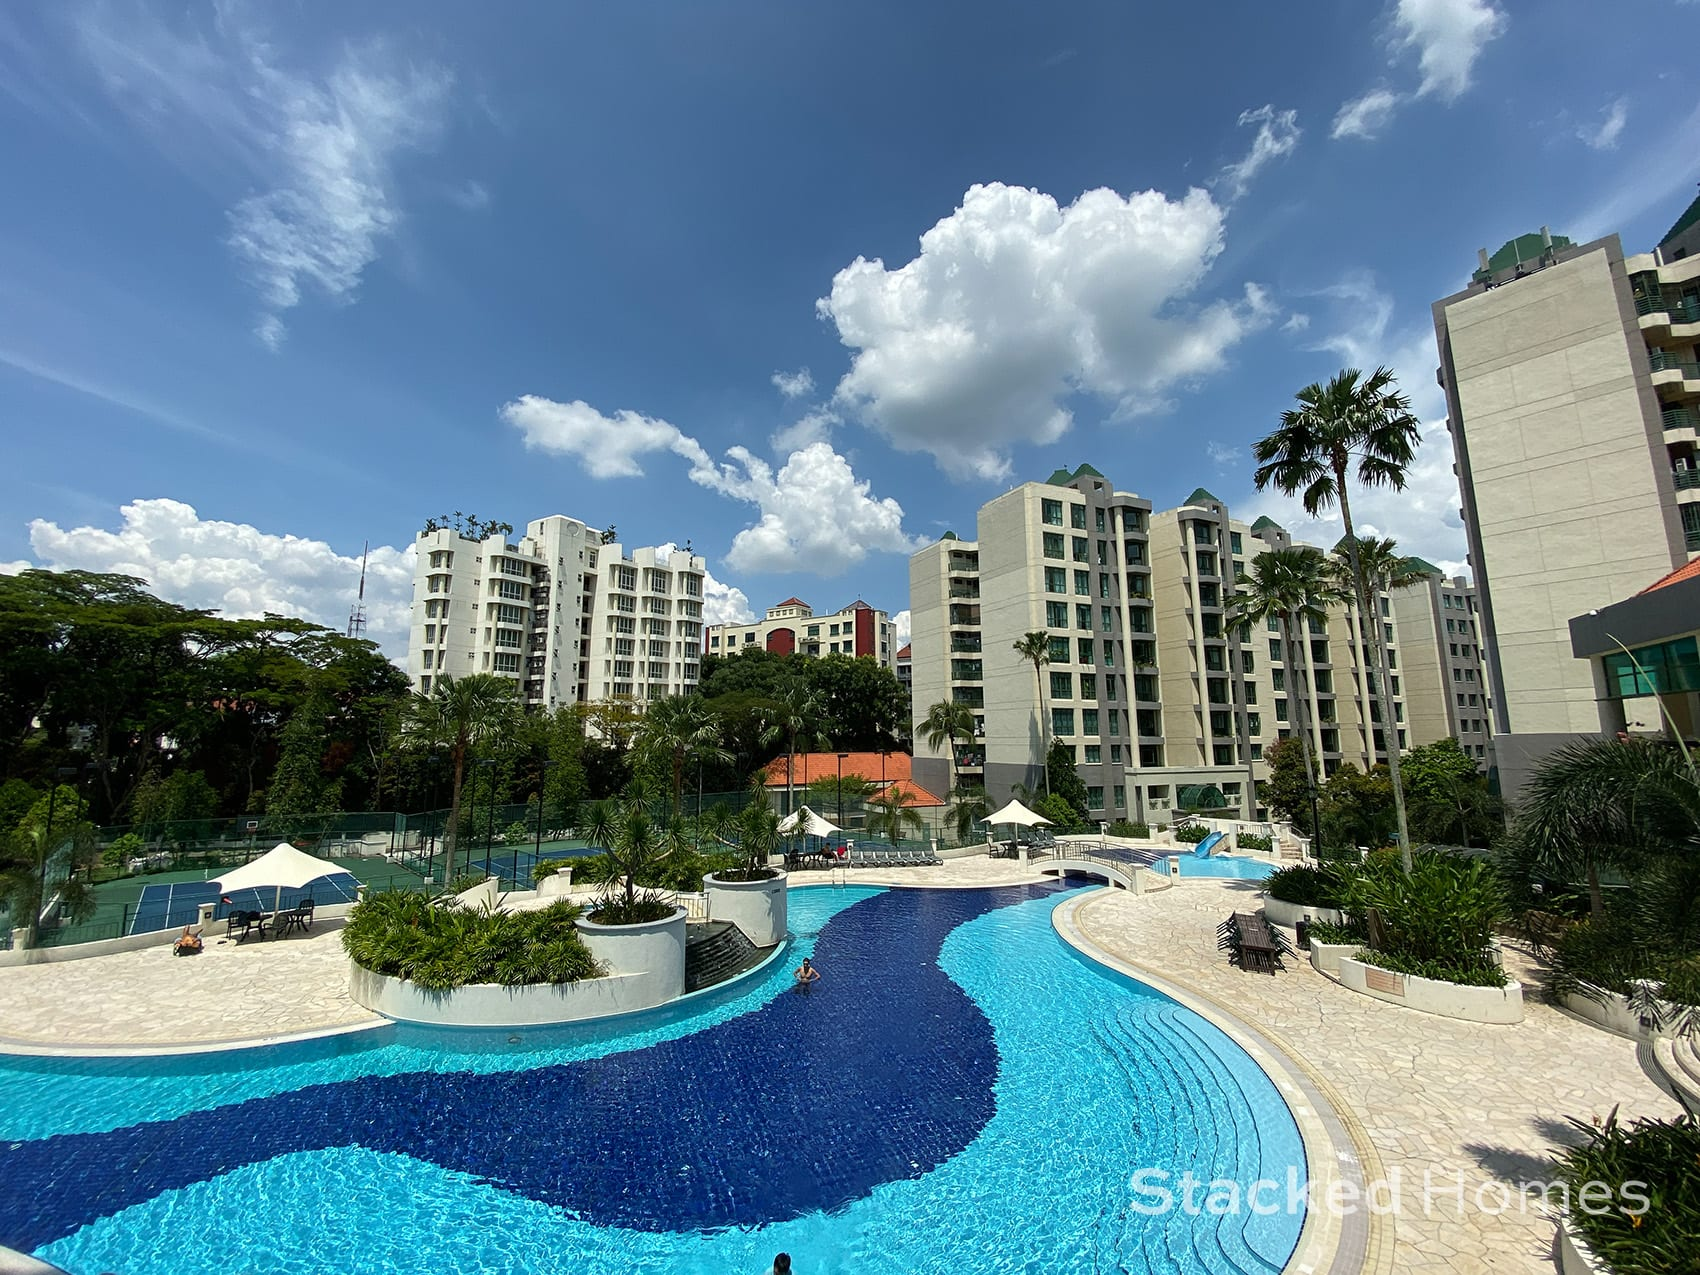 Signature park second Swimming pool